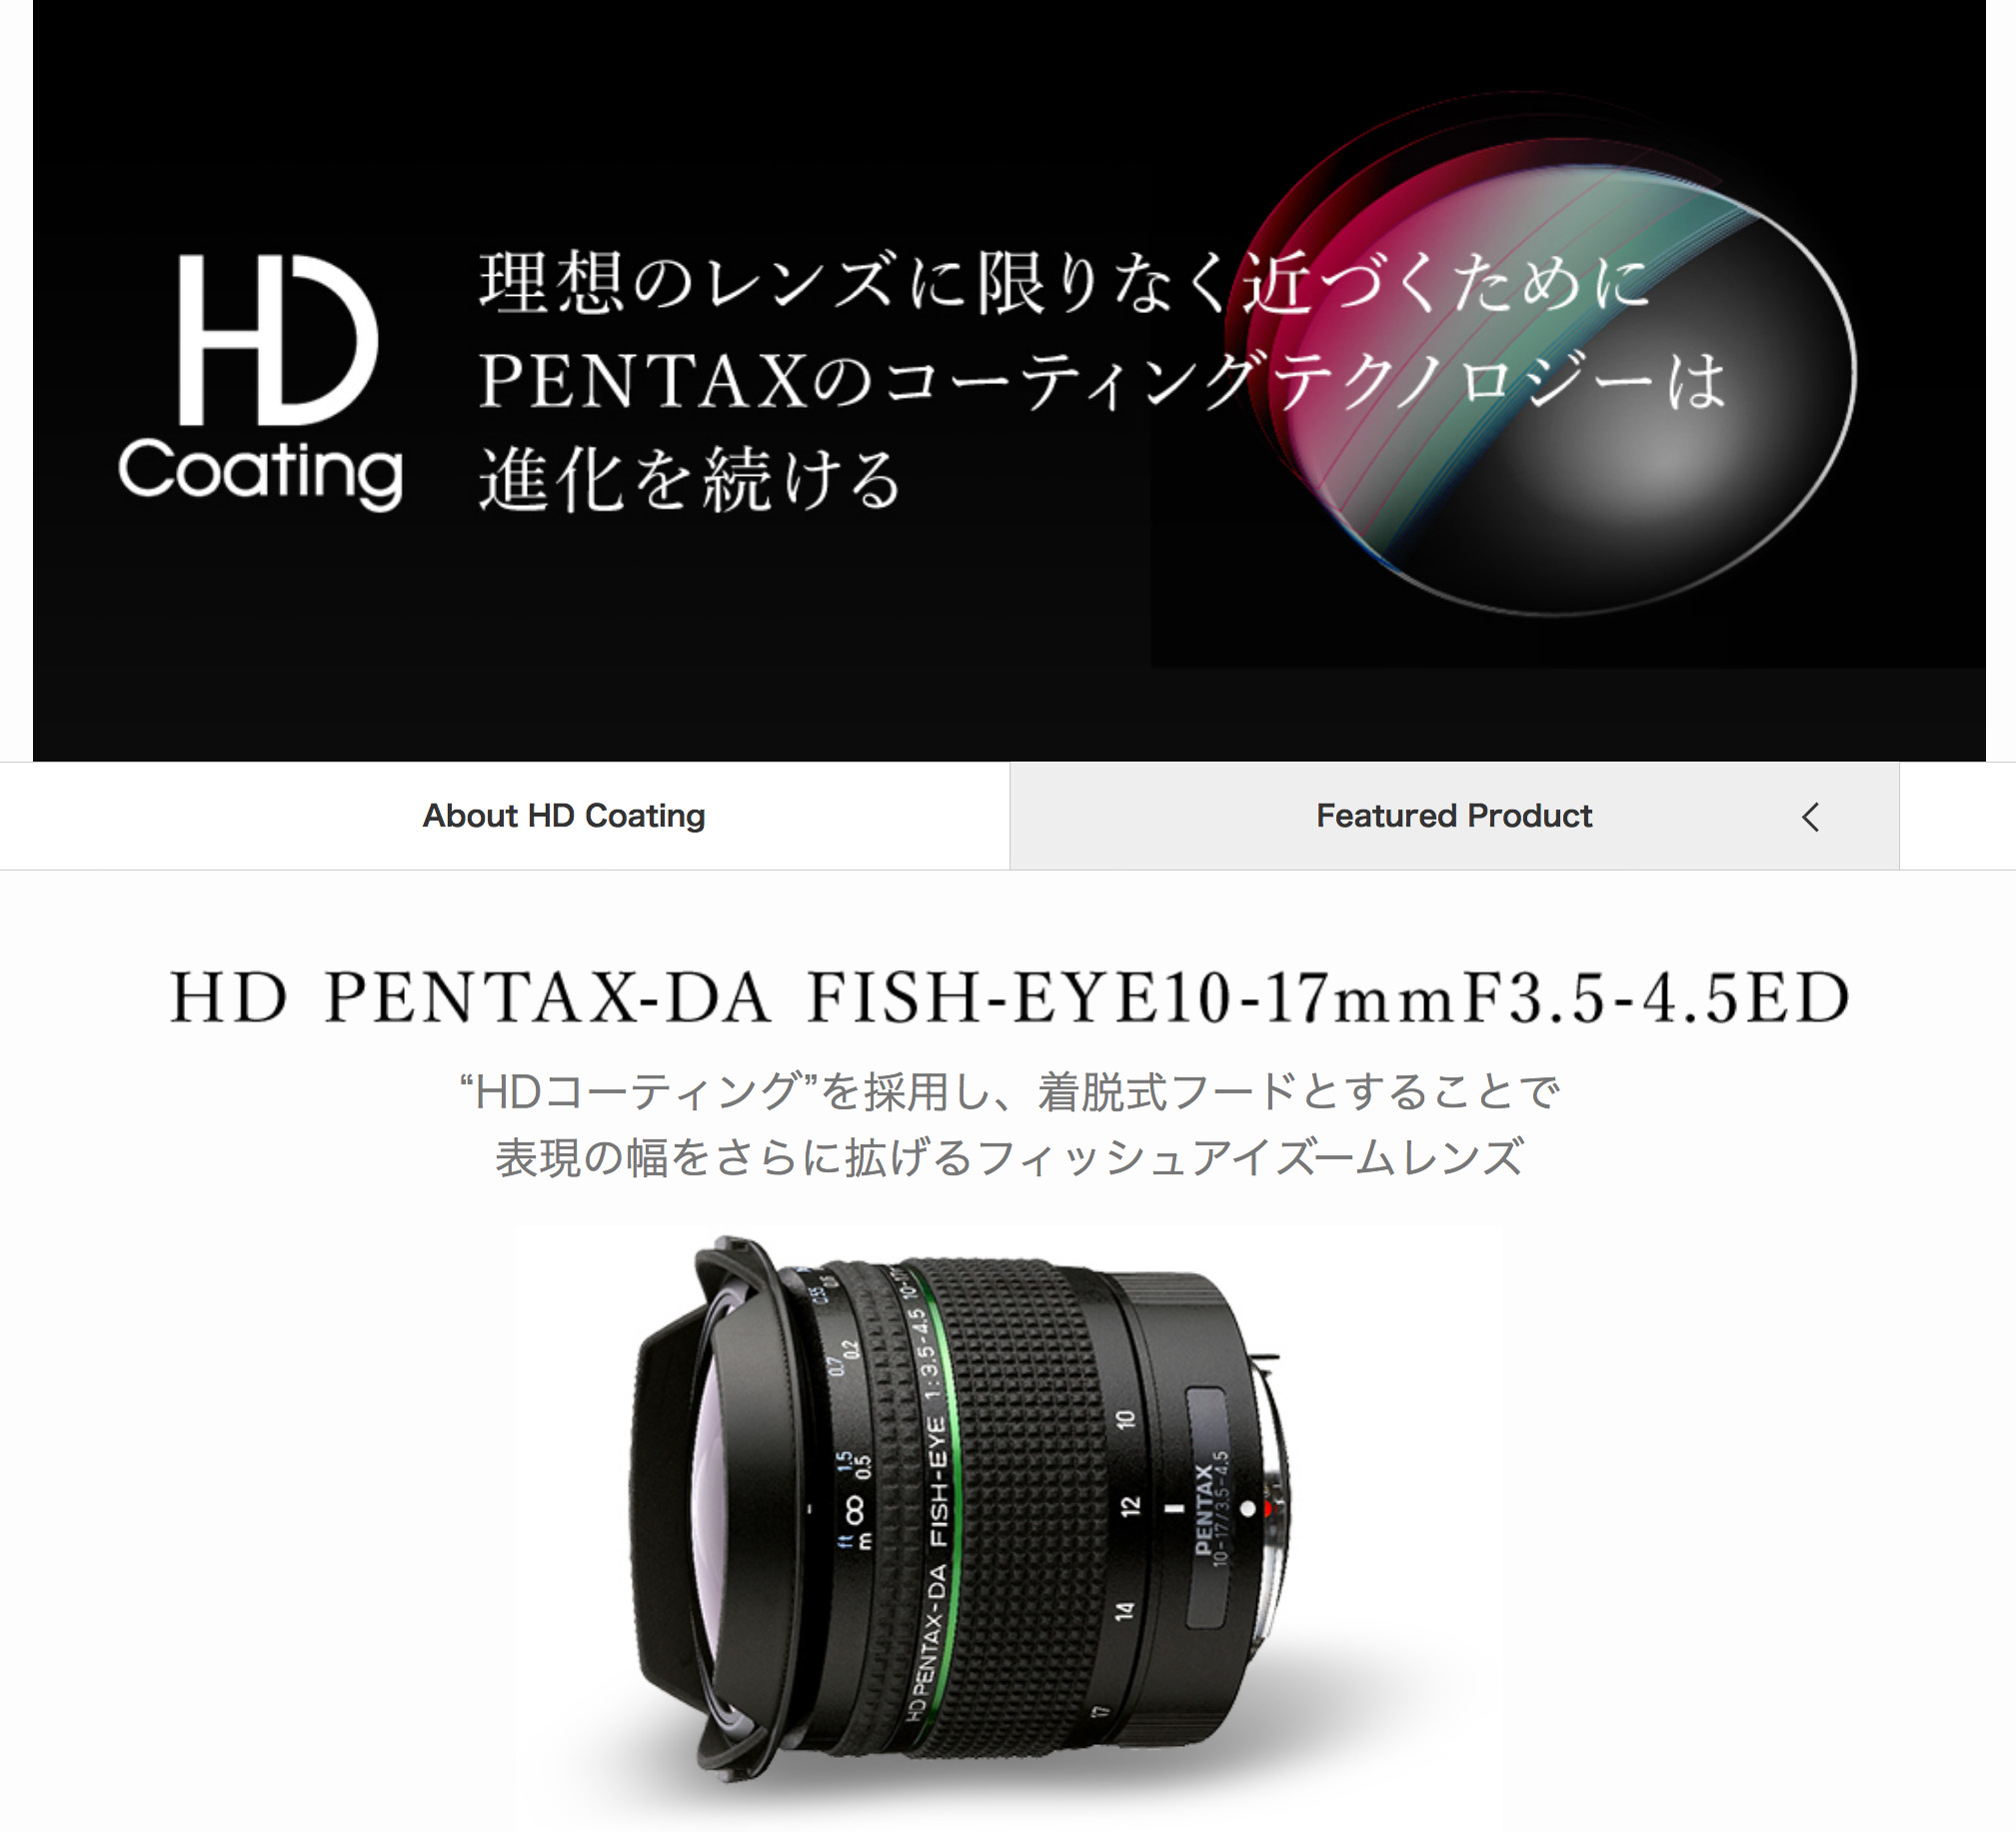 HD PENTAX-DA FISH-EYE10-17mmF3.5-4.5